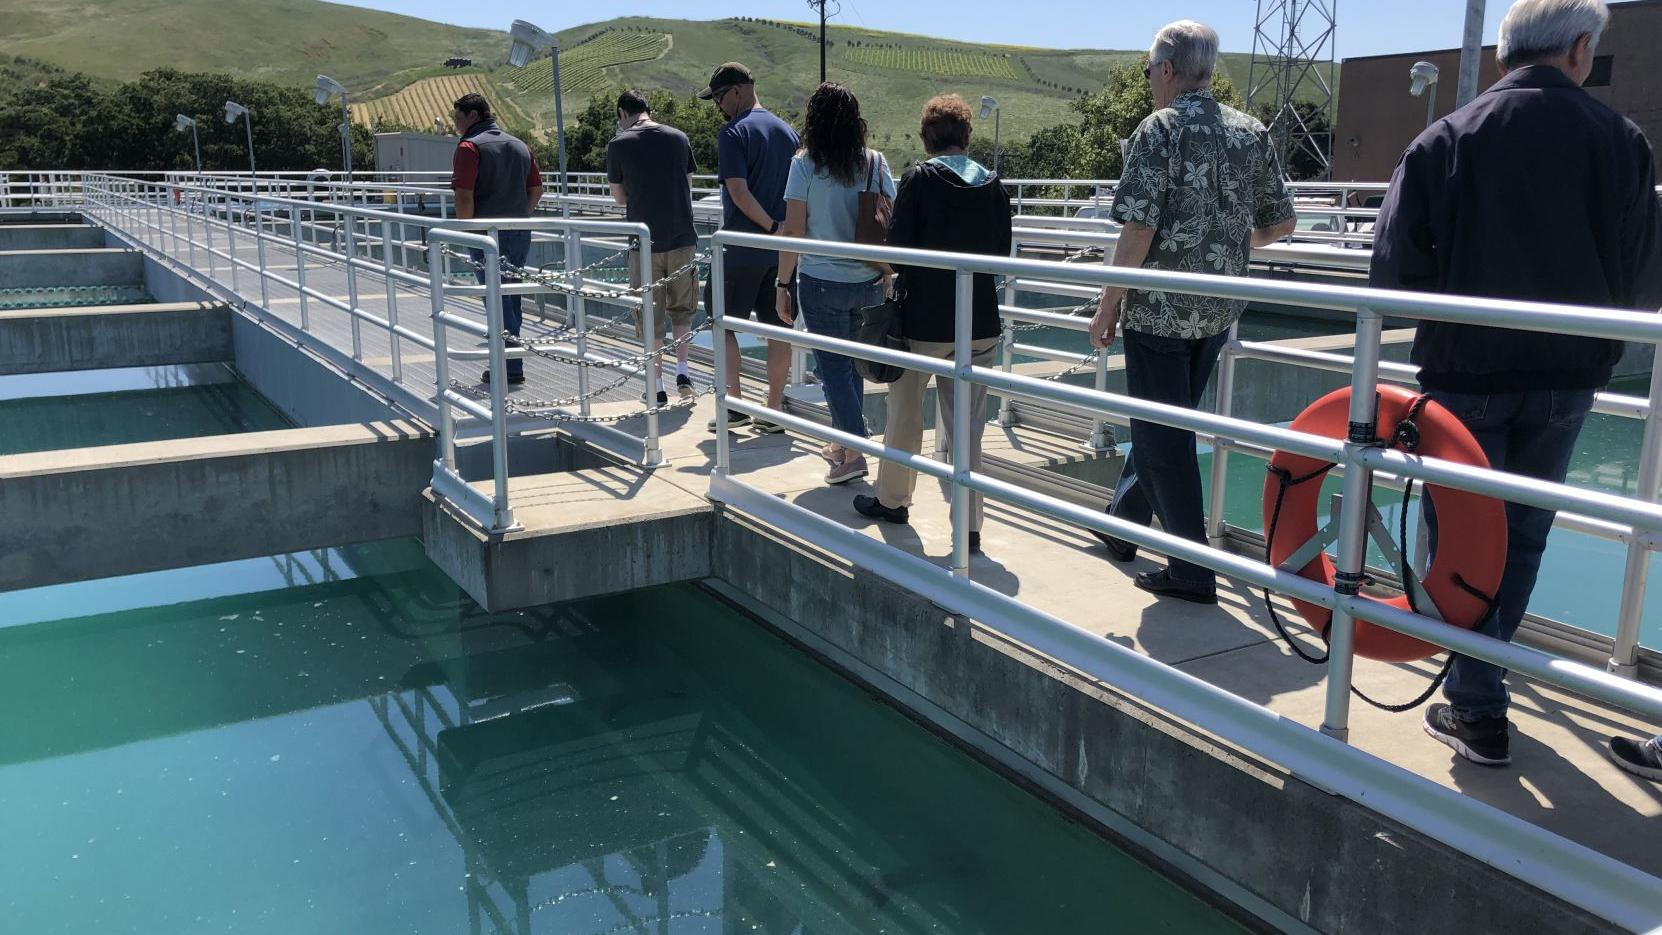 Napa whets its appetite for curiosity at Tap Water Day